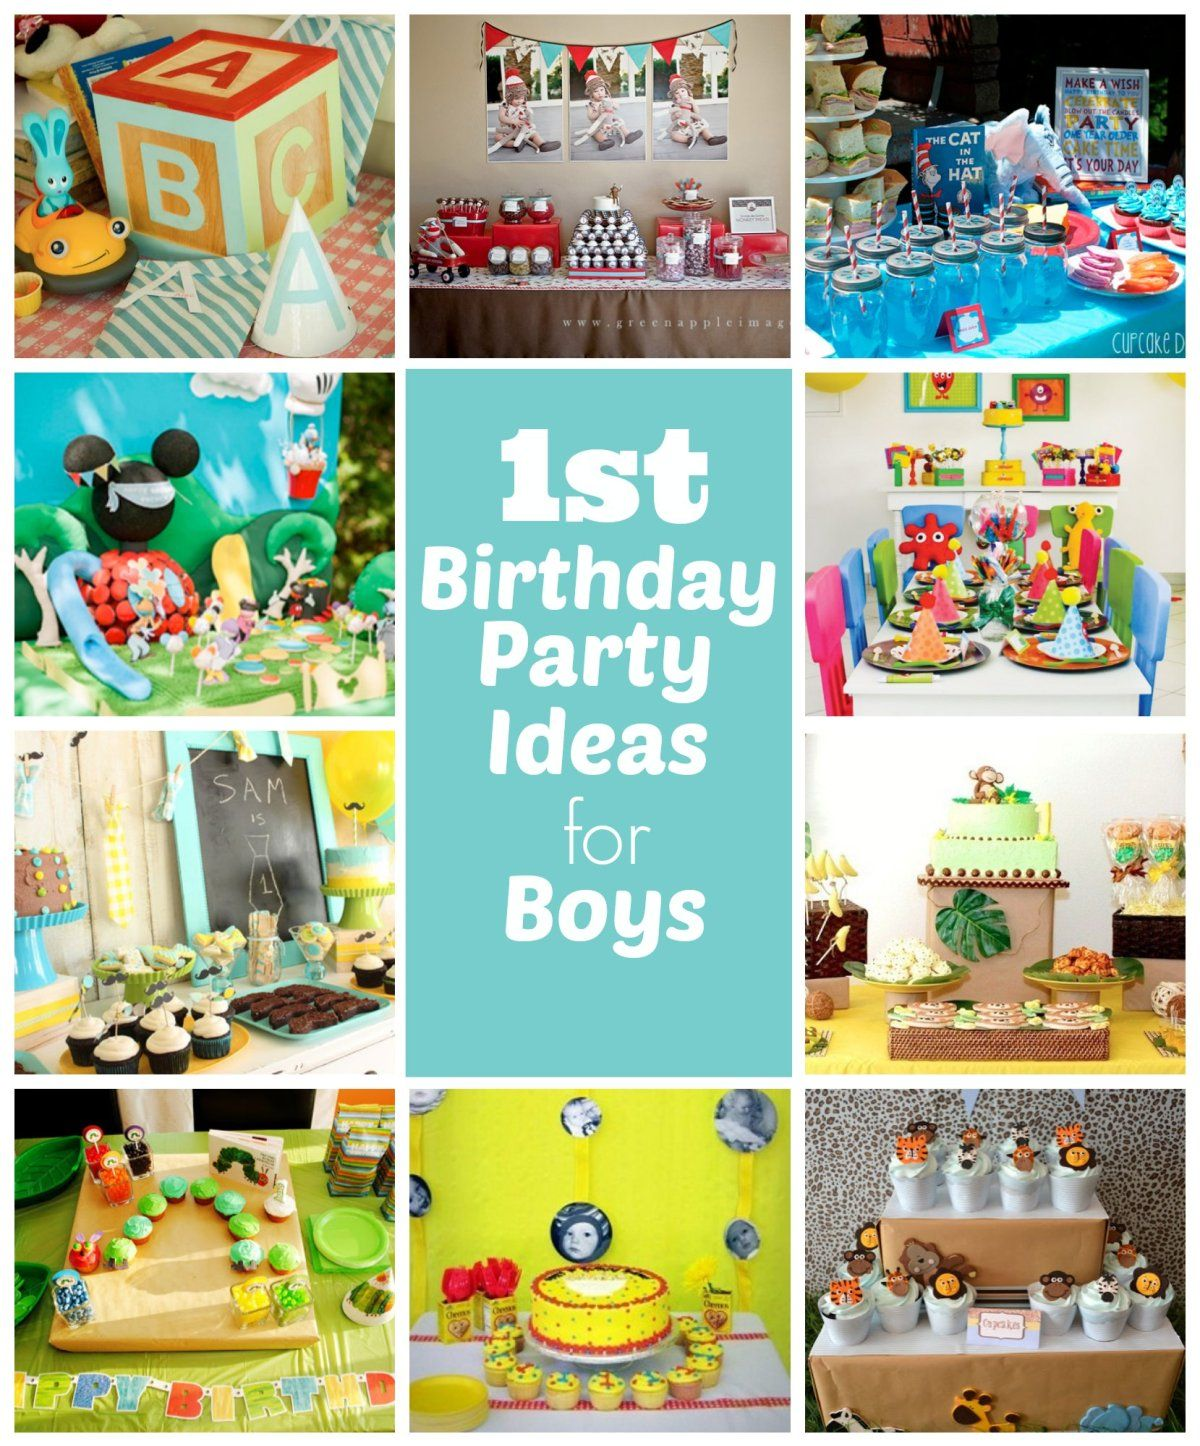 1st birthday party ideas for boys | kids | pinterest | birthday, 1st